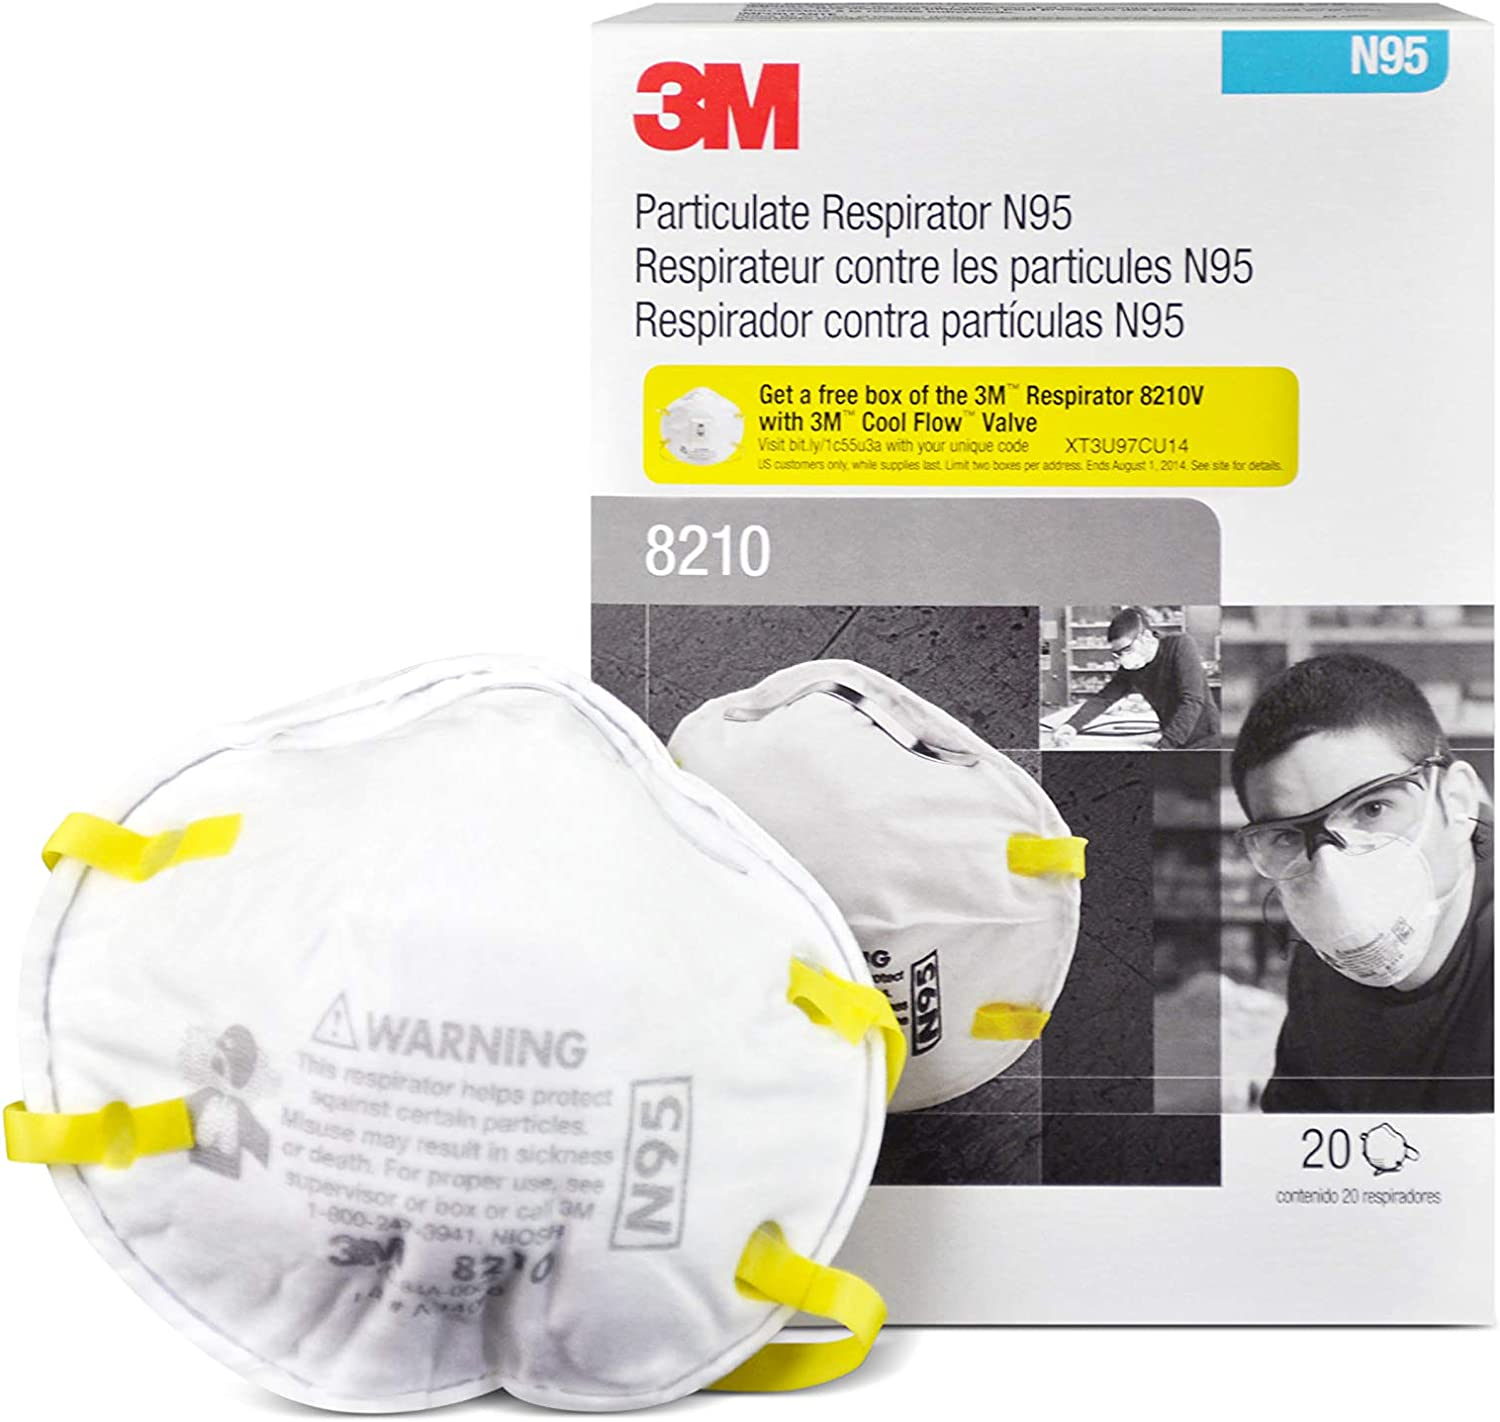 By Masks Ms92530 8210 Respirators Dust R3 N95 - Niosh Approved Box 3m 20 Safety Per